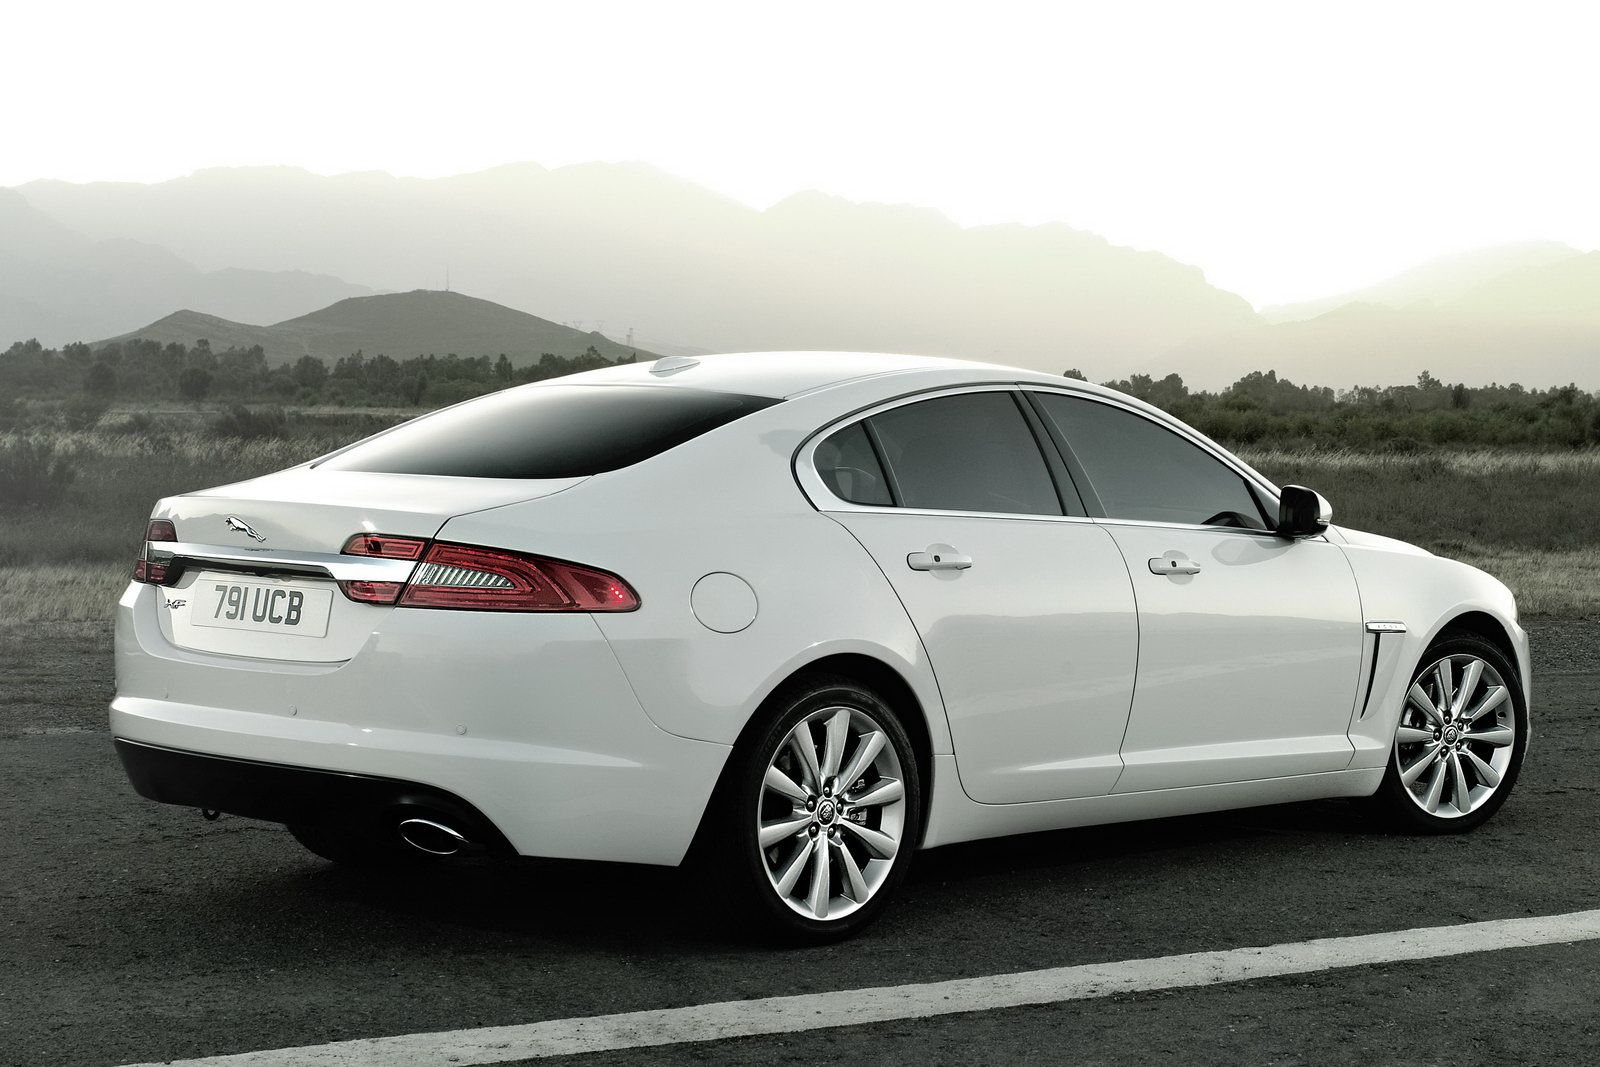 Absolutely Love The Jaguar Xf With Images Jaguar Car Jaguar